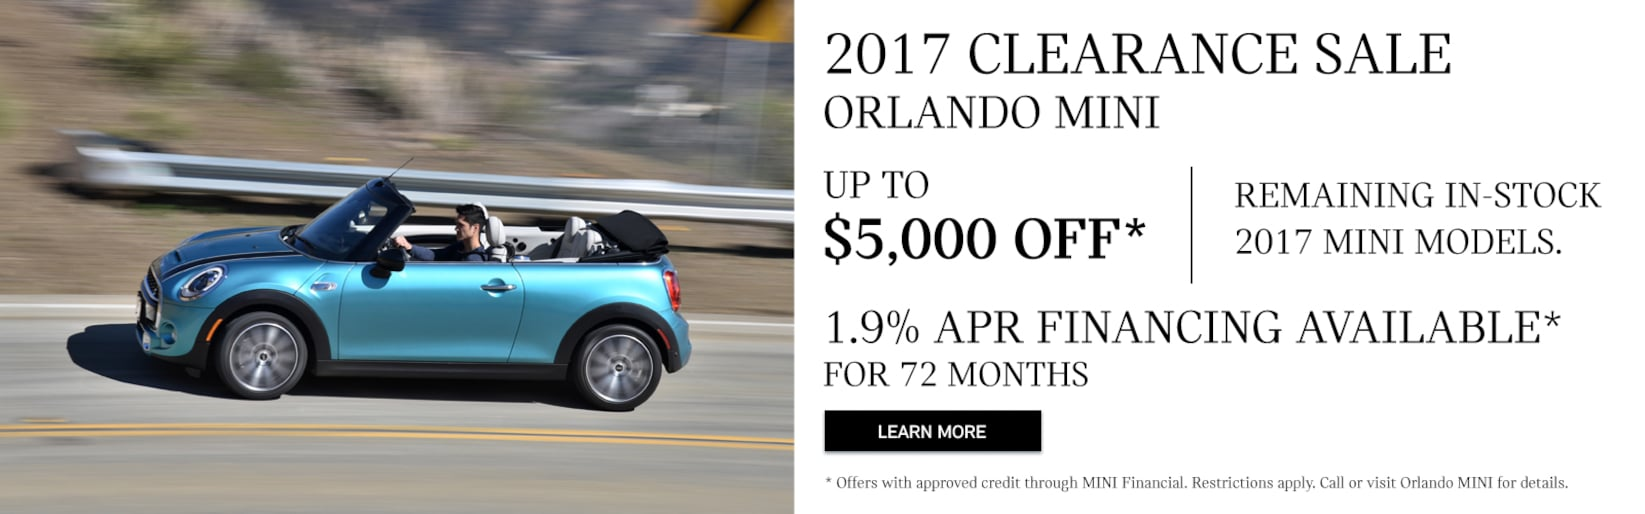 orlando mini new used cars for sale florida dealership autos post. Black Bedroom Furniture Sets. Home Design Ideas